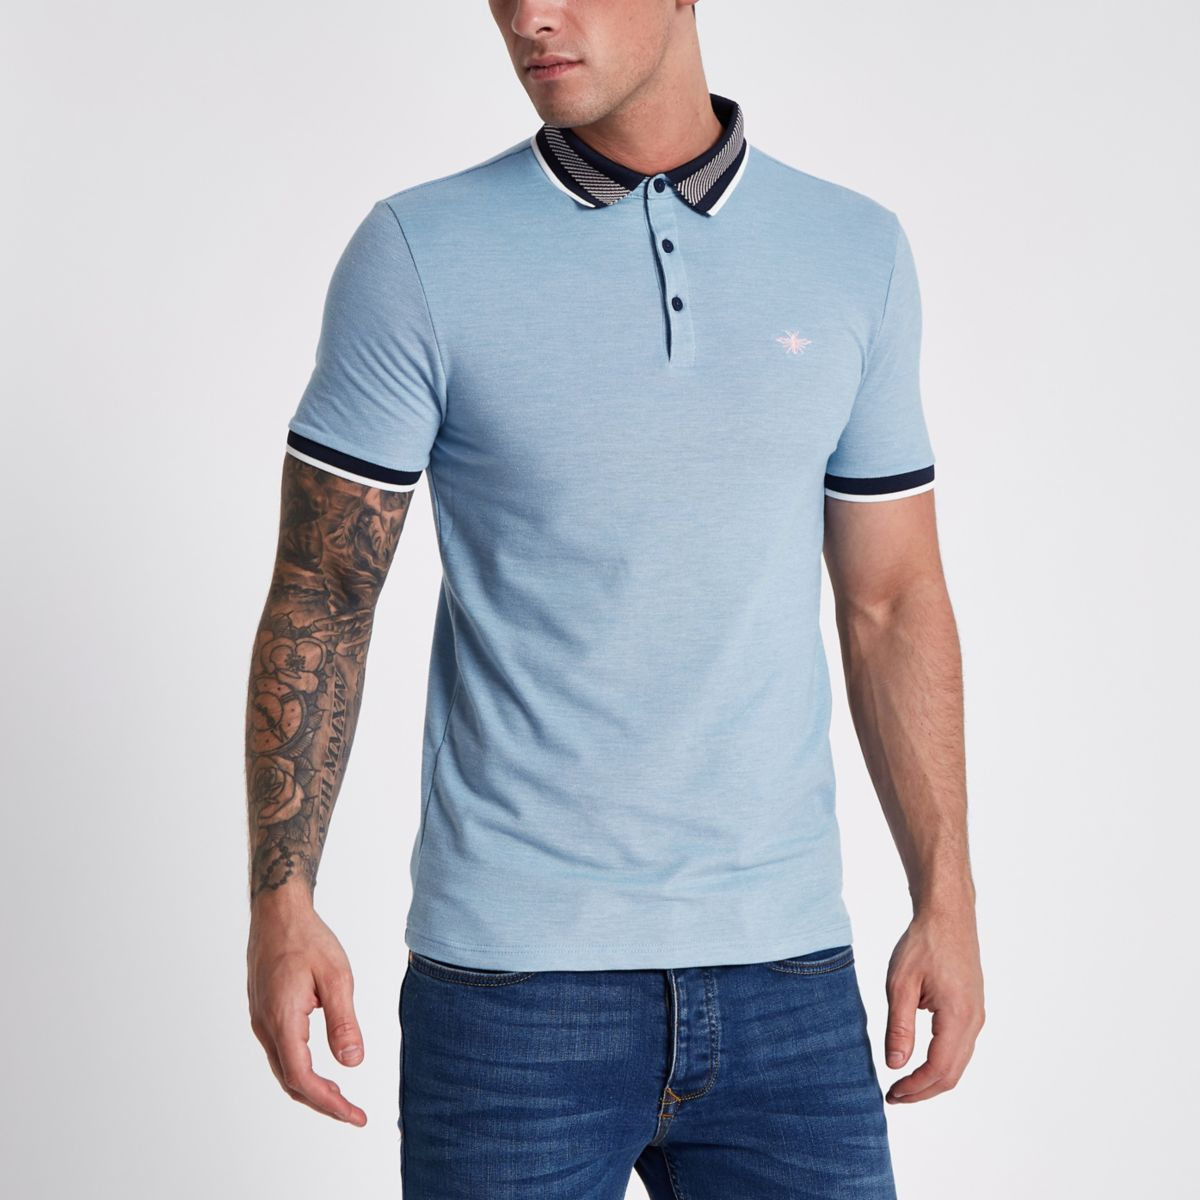 Blue muscle fit wasp embroidery polo shirt - Polo Shirts - men